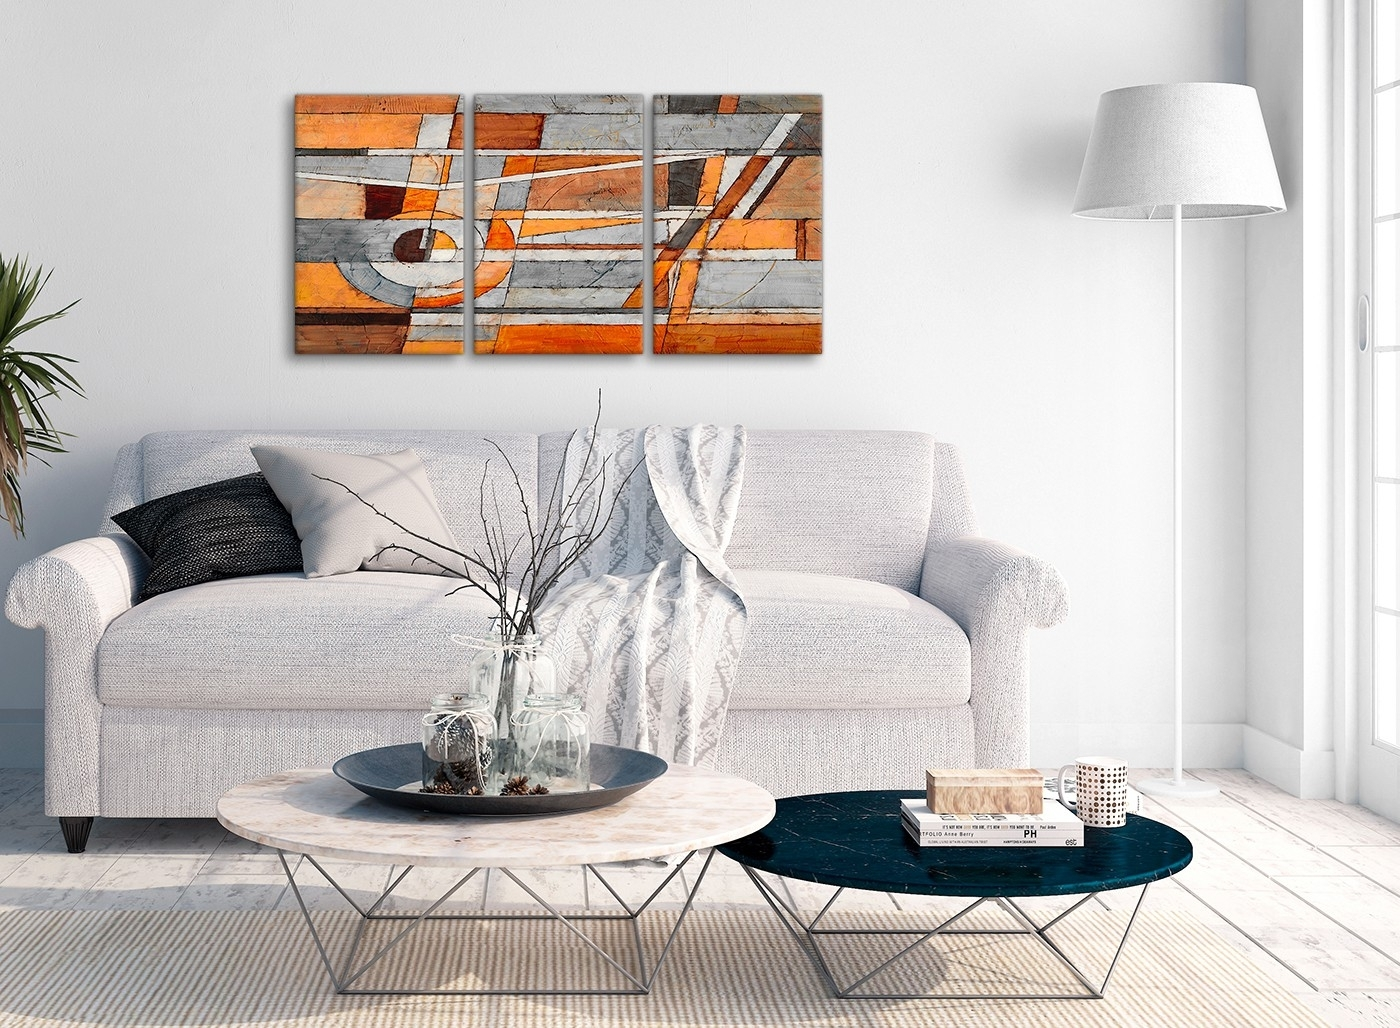 3 Piece Burnt Orange Grey Painting Office Canvas Wall Art Decor Inside Most Recent Gray Canvas Wall Art (View 14 of 20)